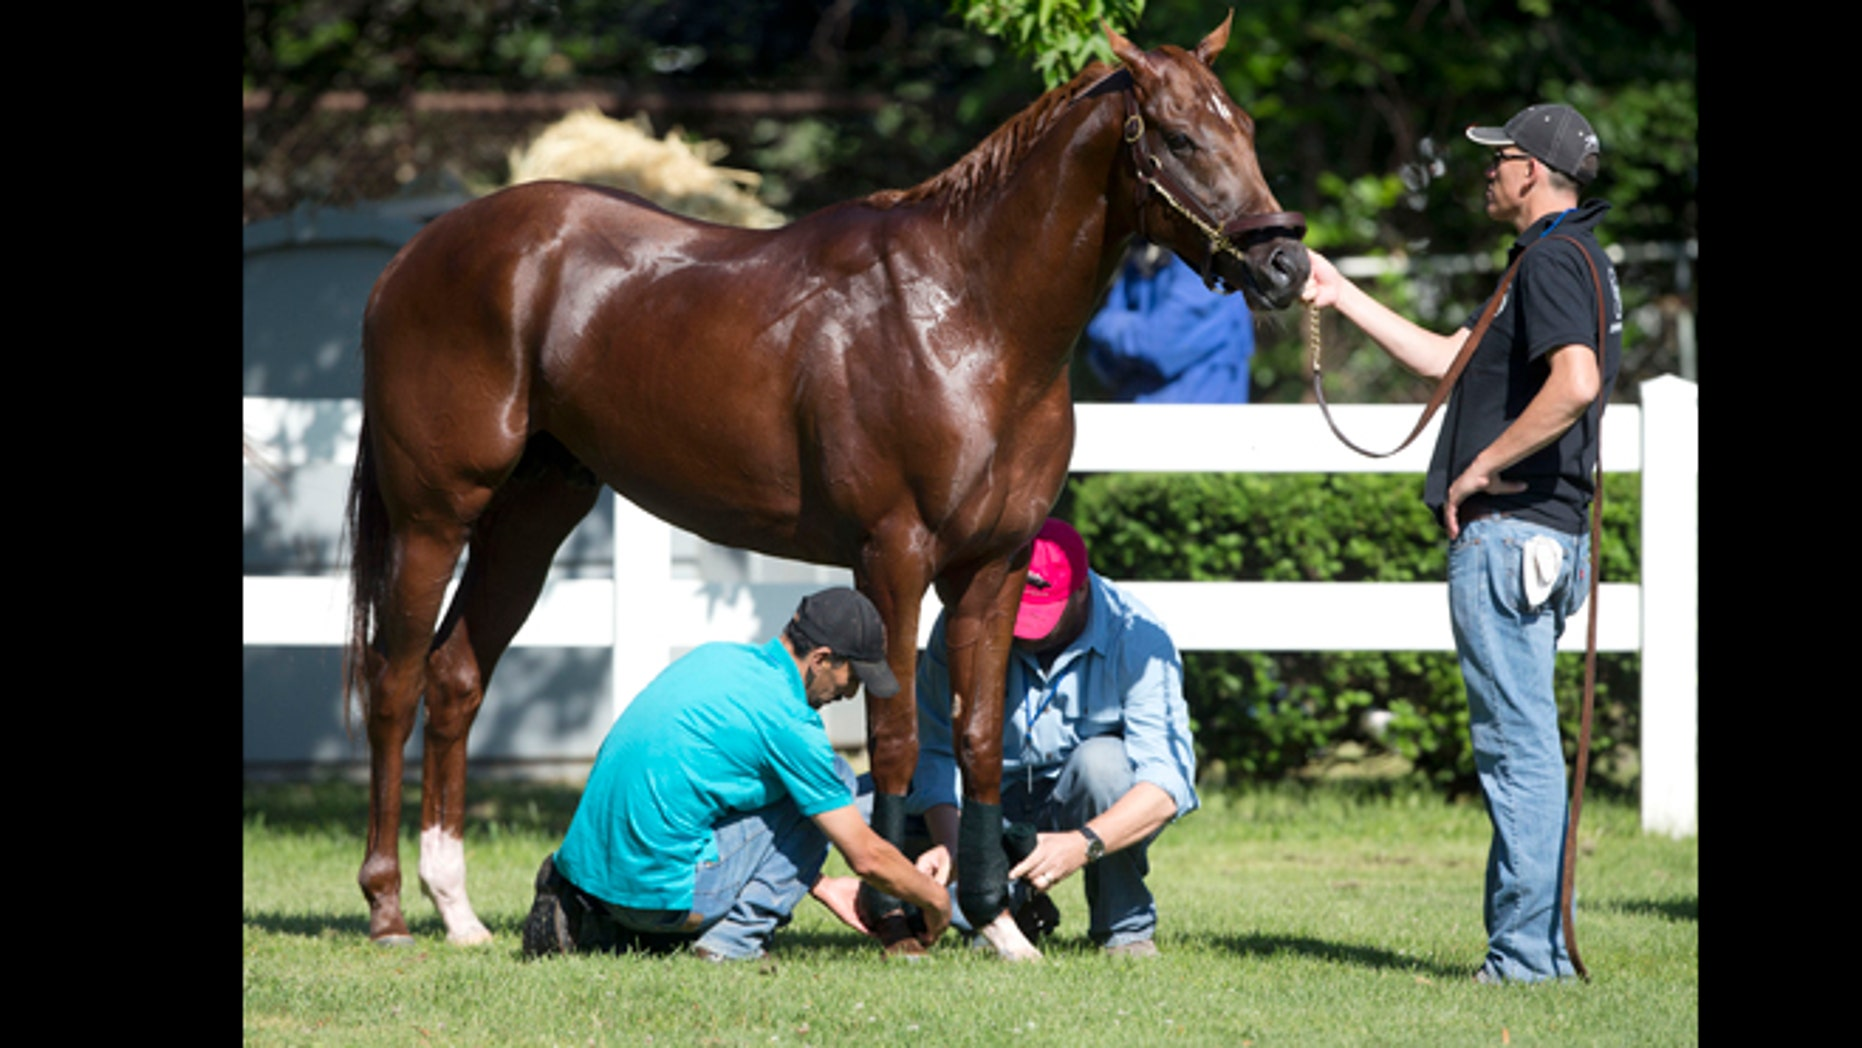 FILE - This June 7, 2012 file photo shows I'll Have Another being tended to after a bath at Belmont Park in Elmont, N.Y.  (AP Photo/Mike Groll, File)